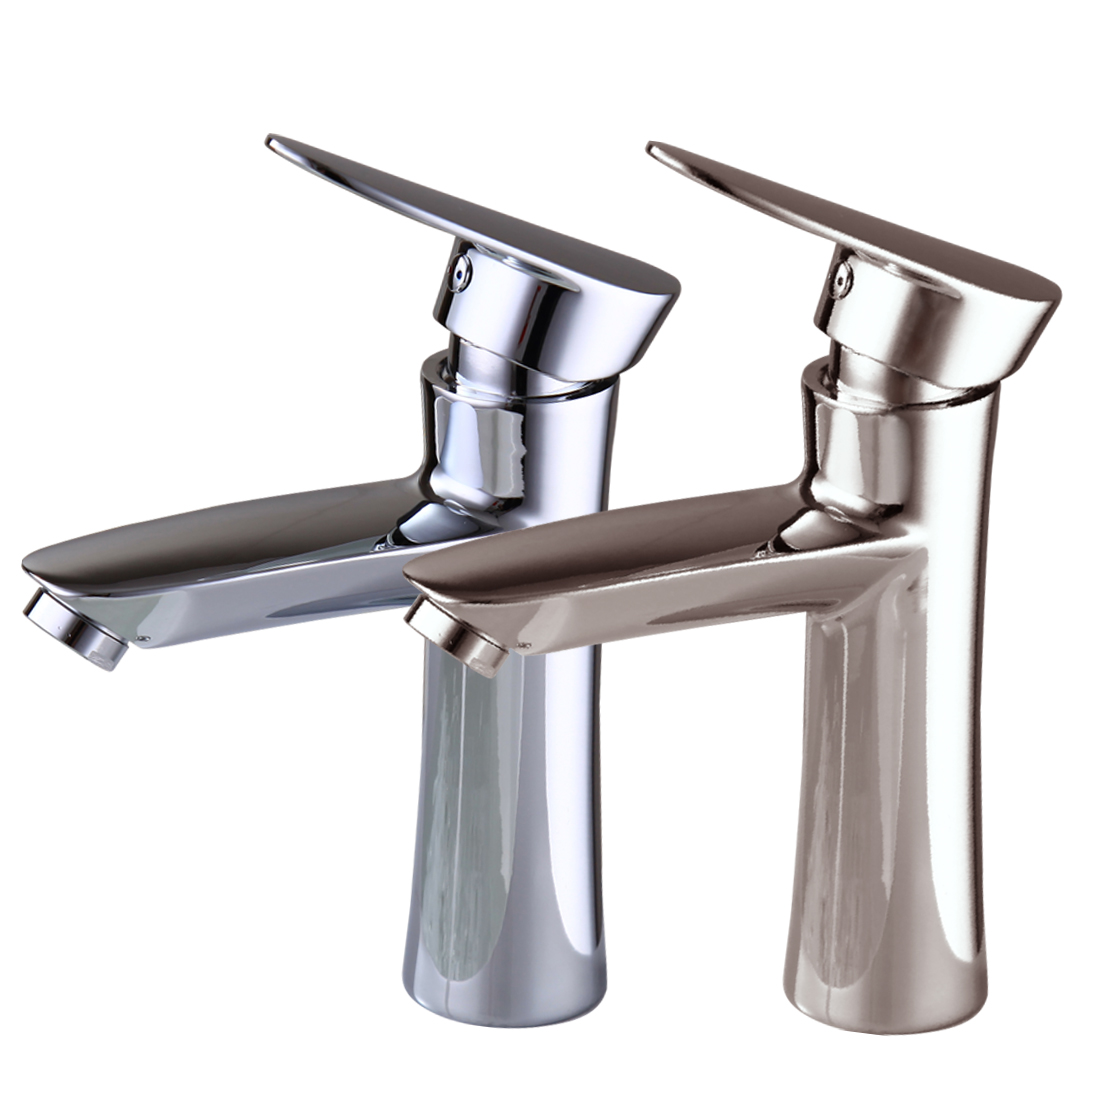 Oil Rubbed Bronze Modern Bathroom Faucet Widespread Sink